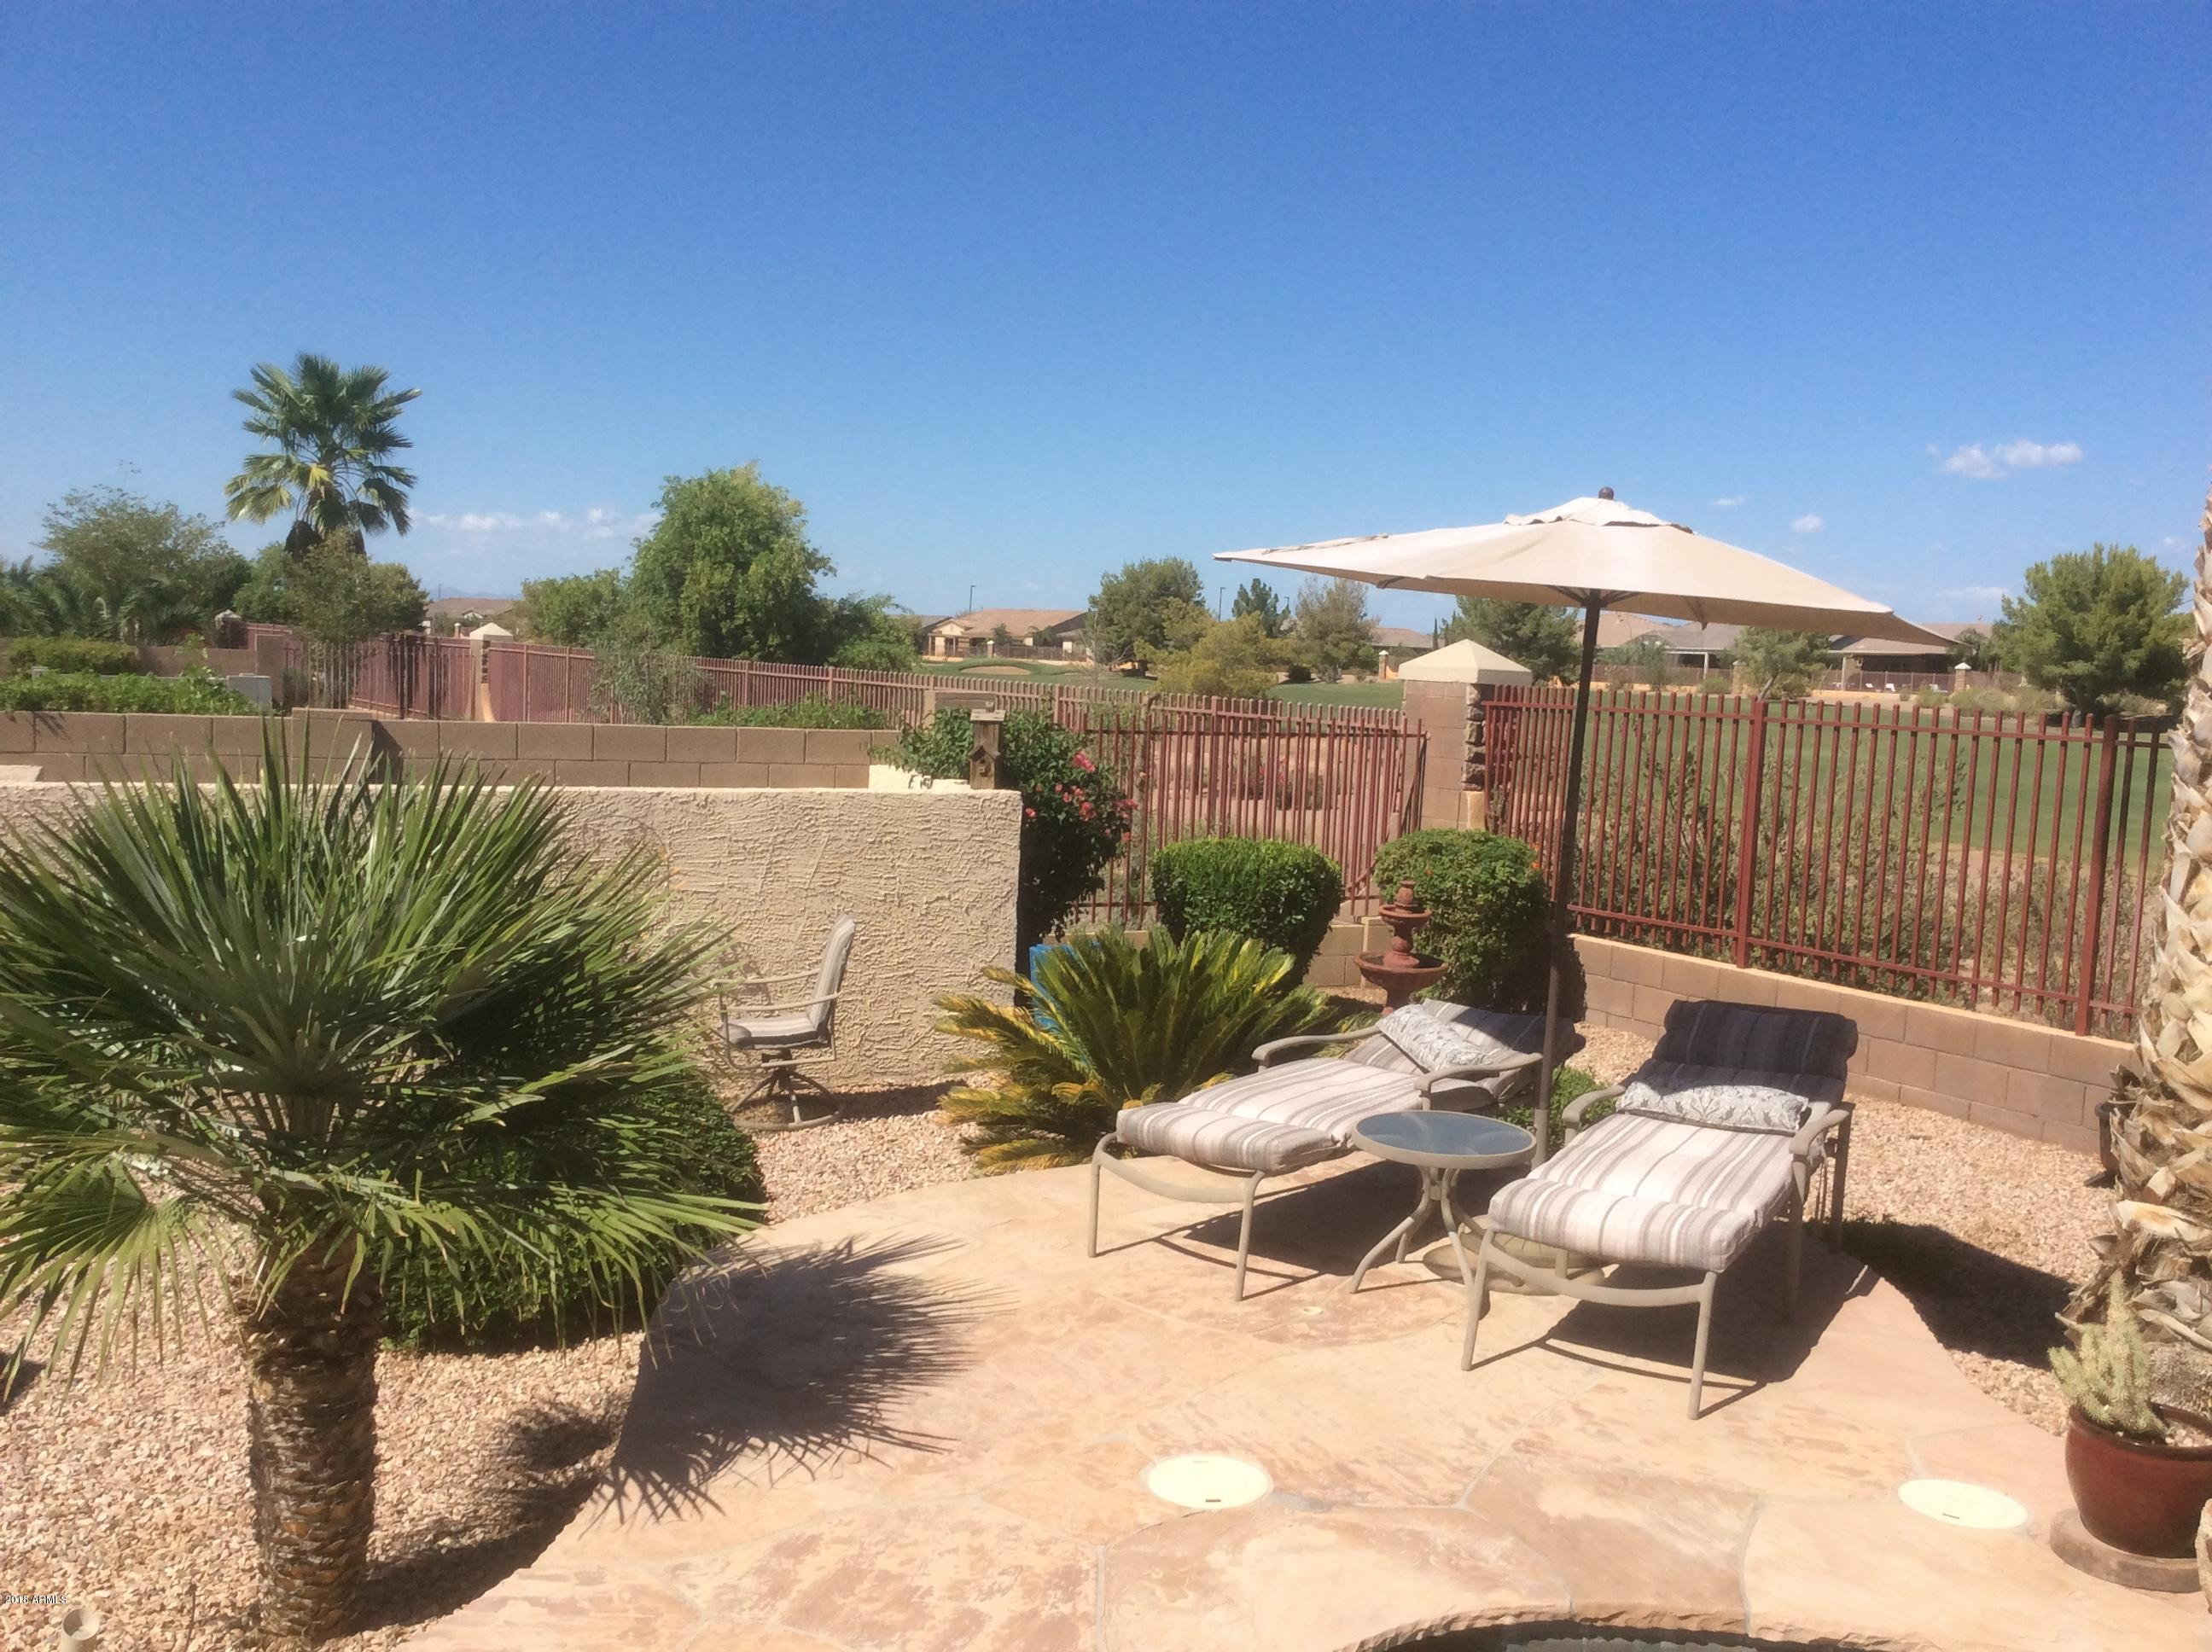 MLS 5815255 6853 S RACHAEL Way, Gilbert, AZ 85298 Golf Course Lots